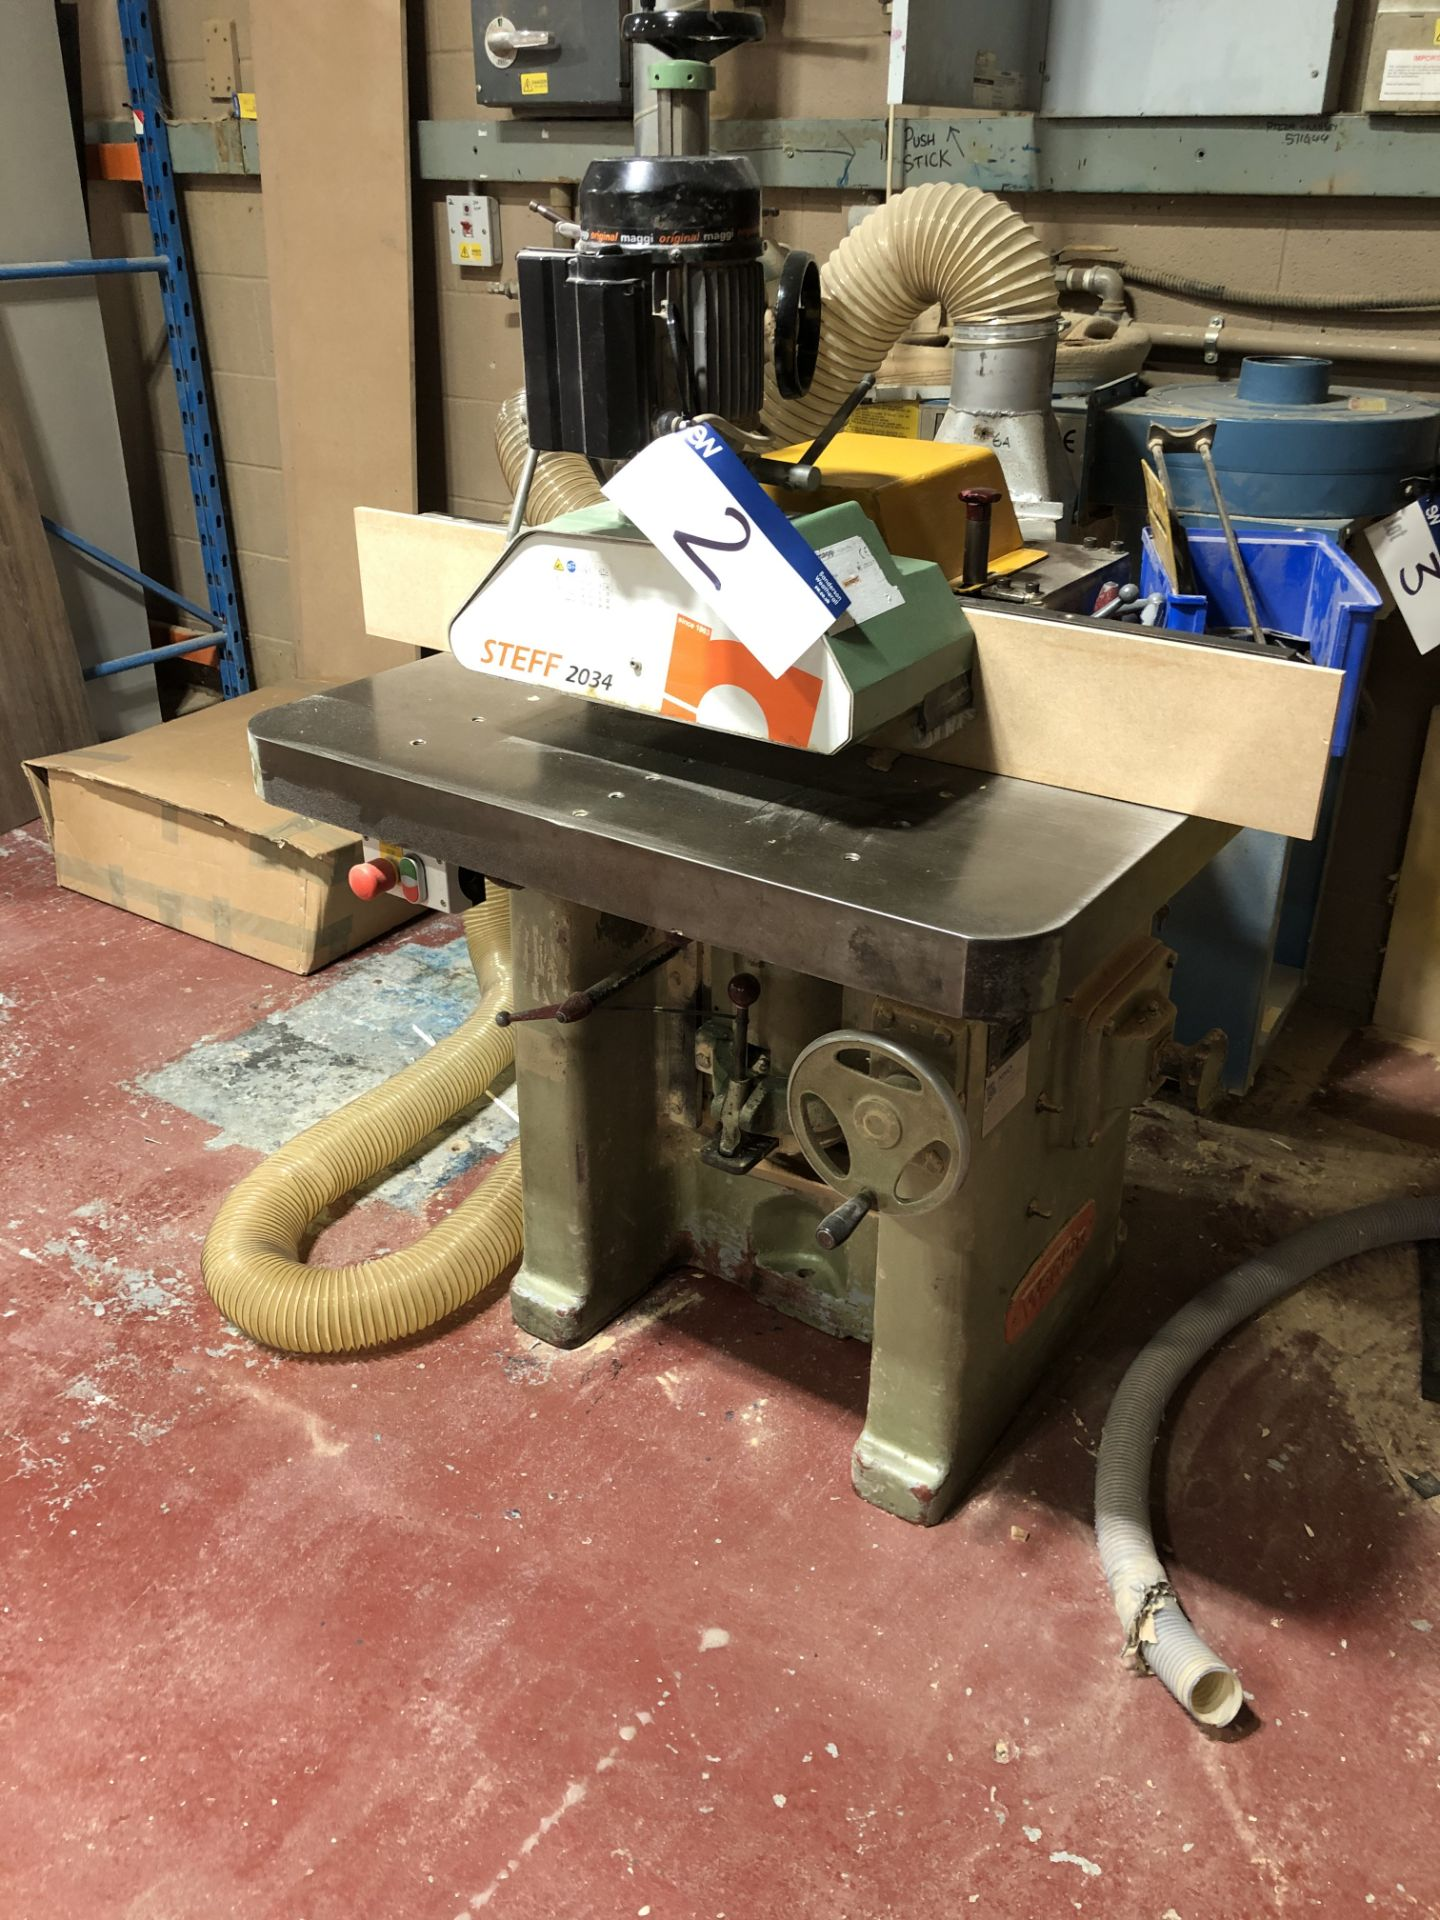 Lot 2 - Wadkin EQ Single Spindle Moulder. Serial Number 4142. Complete with Steff 2034 Power Feed